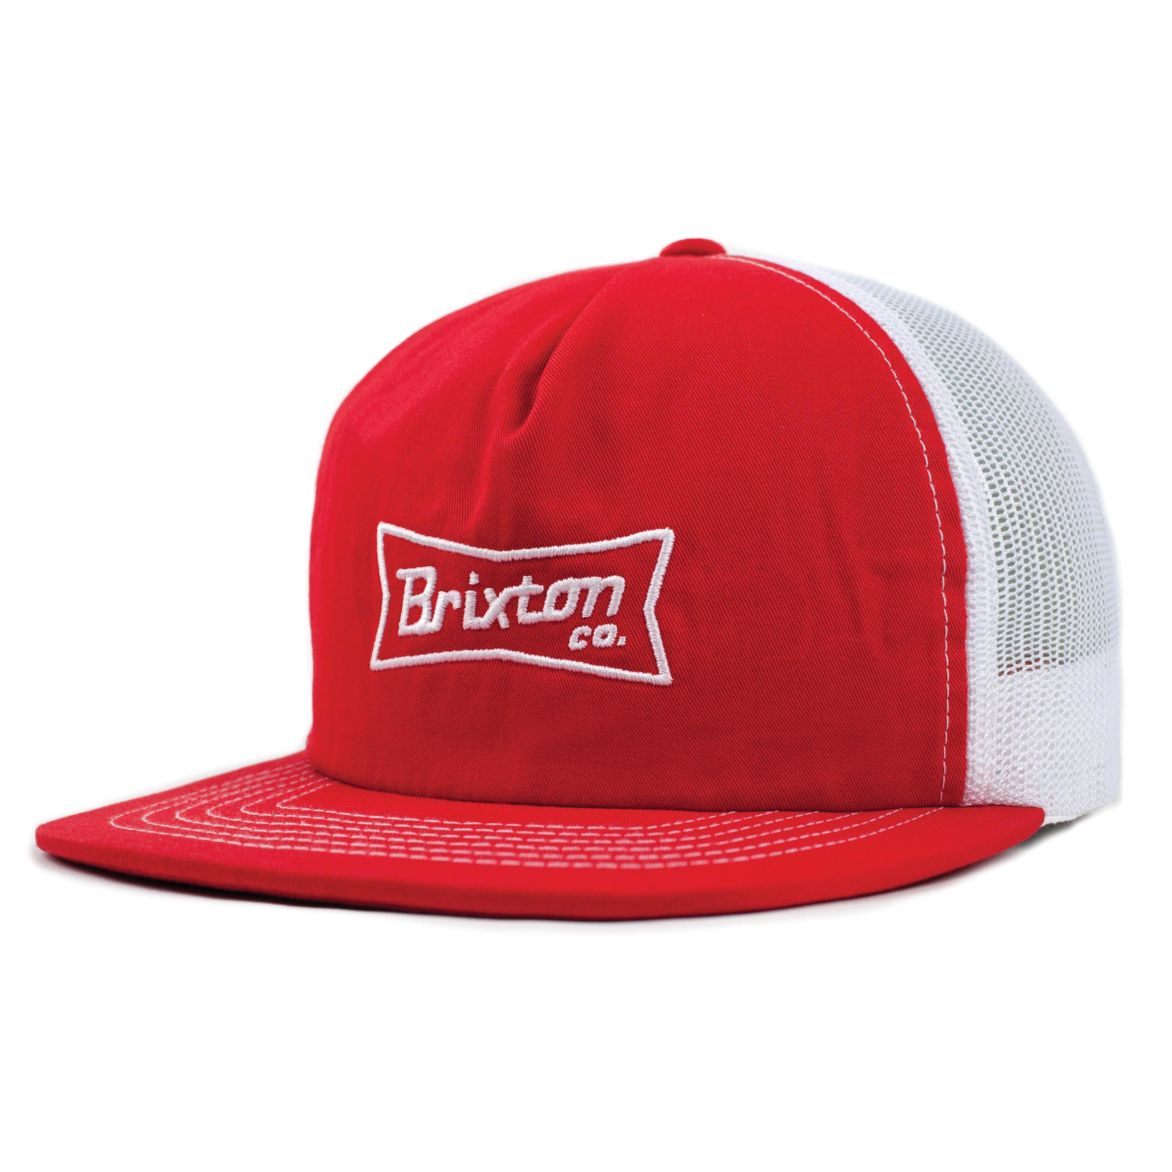 BRIXTON NEW ITEM!!!!!_d0101000_12422050.jpg